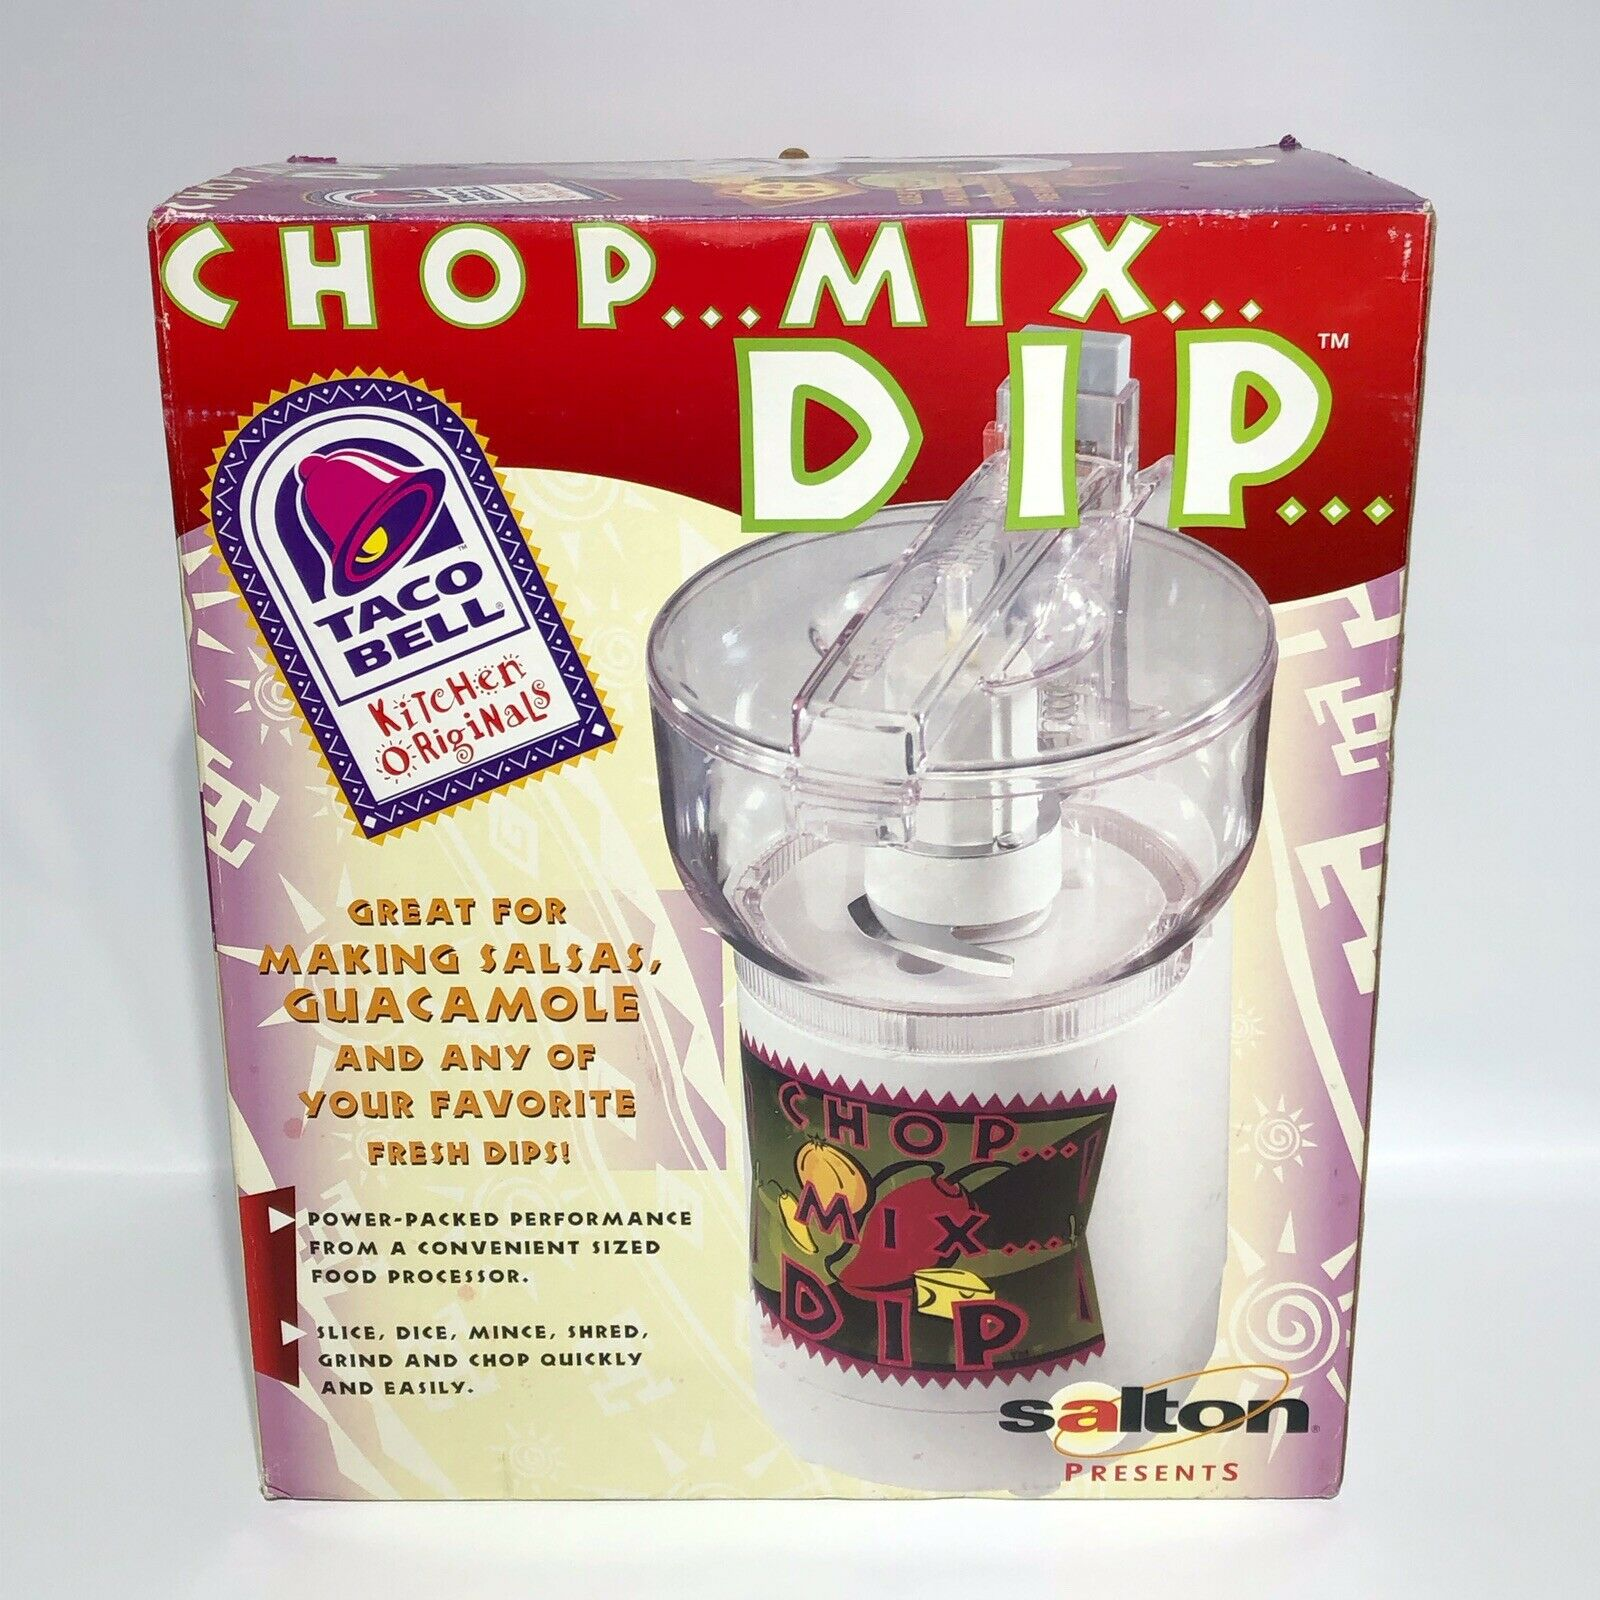 TACO BELL cuisine Originals Mini Food Processor Salton 1998 Chop Mix DIP New